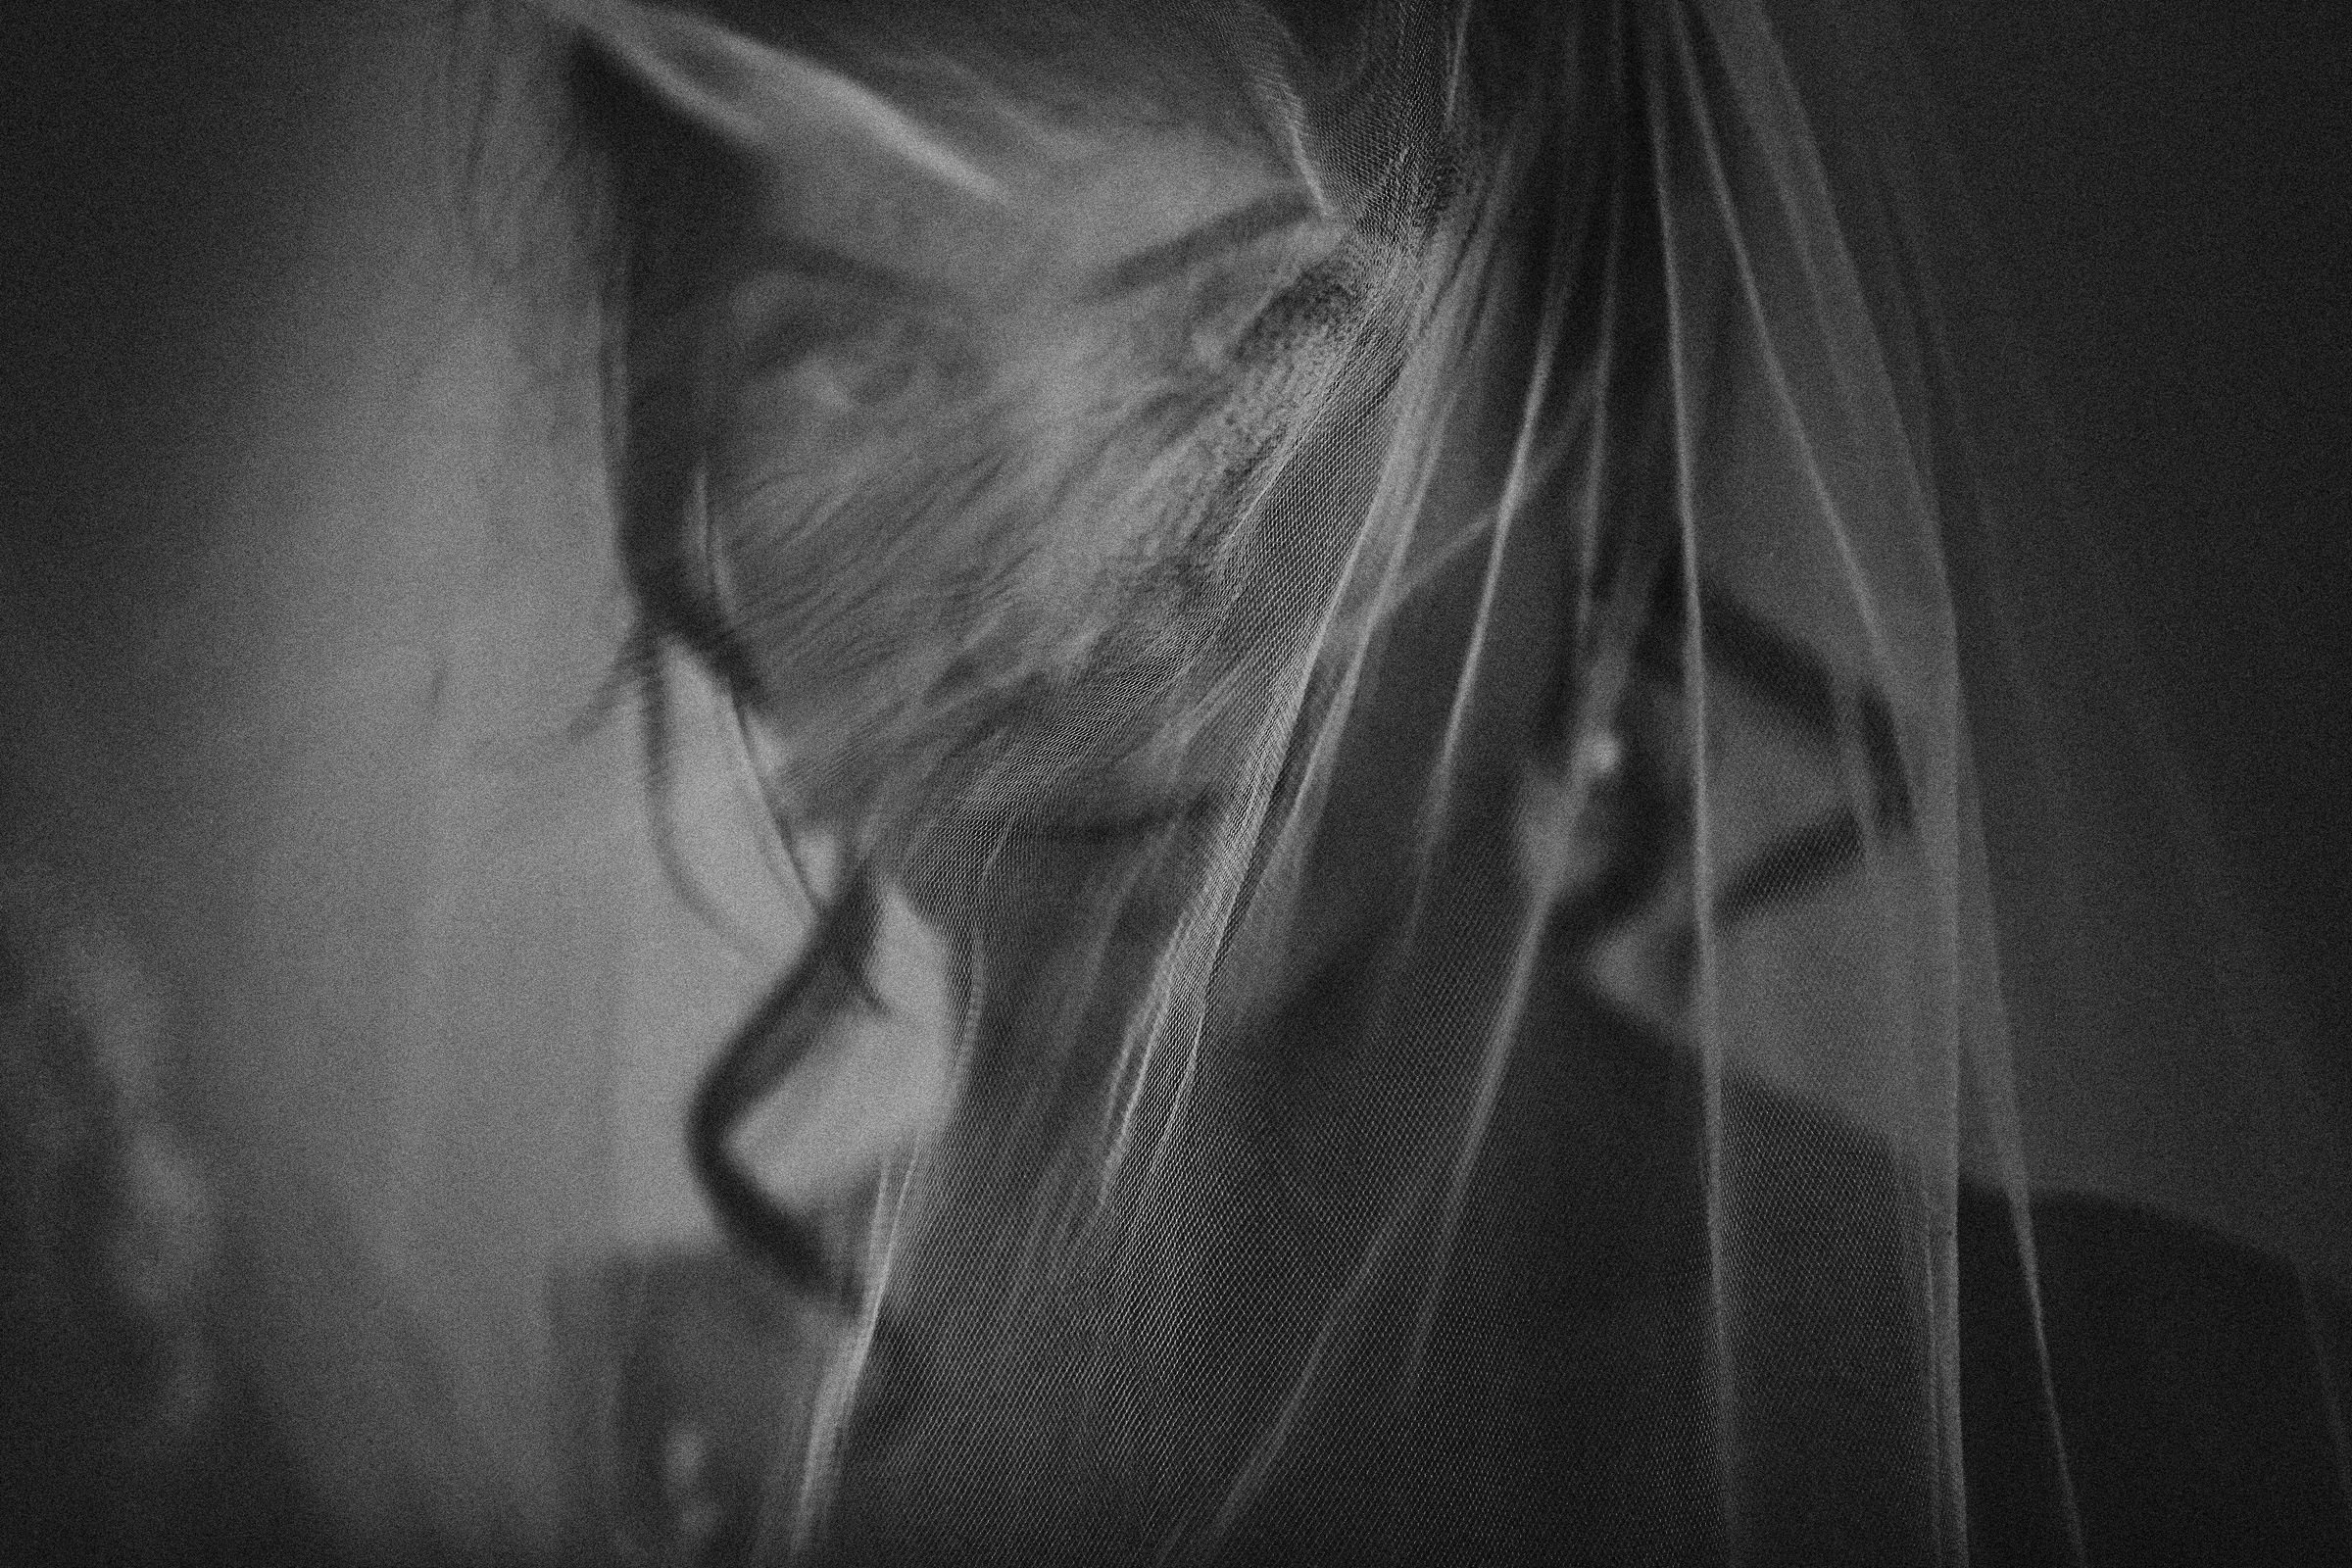 Moody photo of bride under veil, by Franck Boutonnet